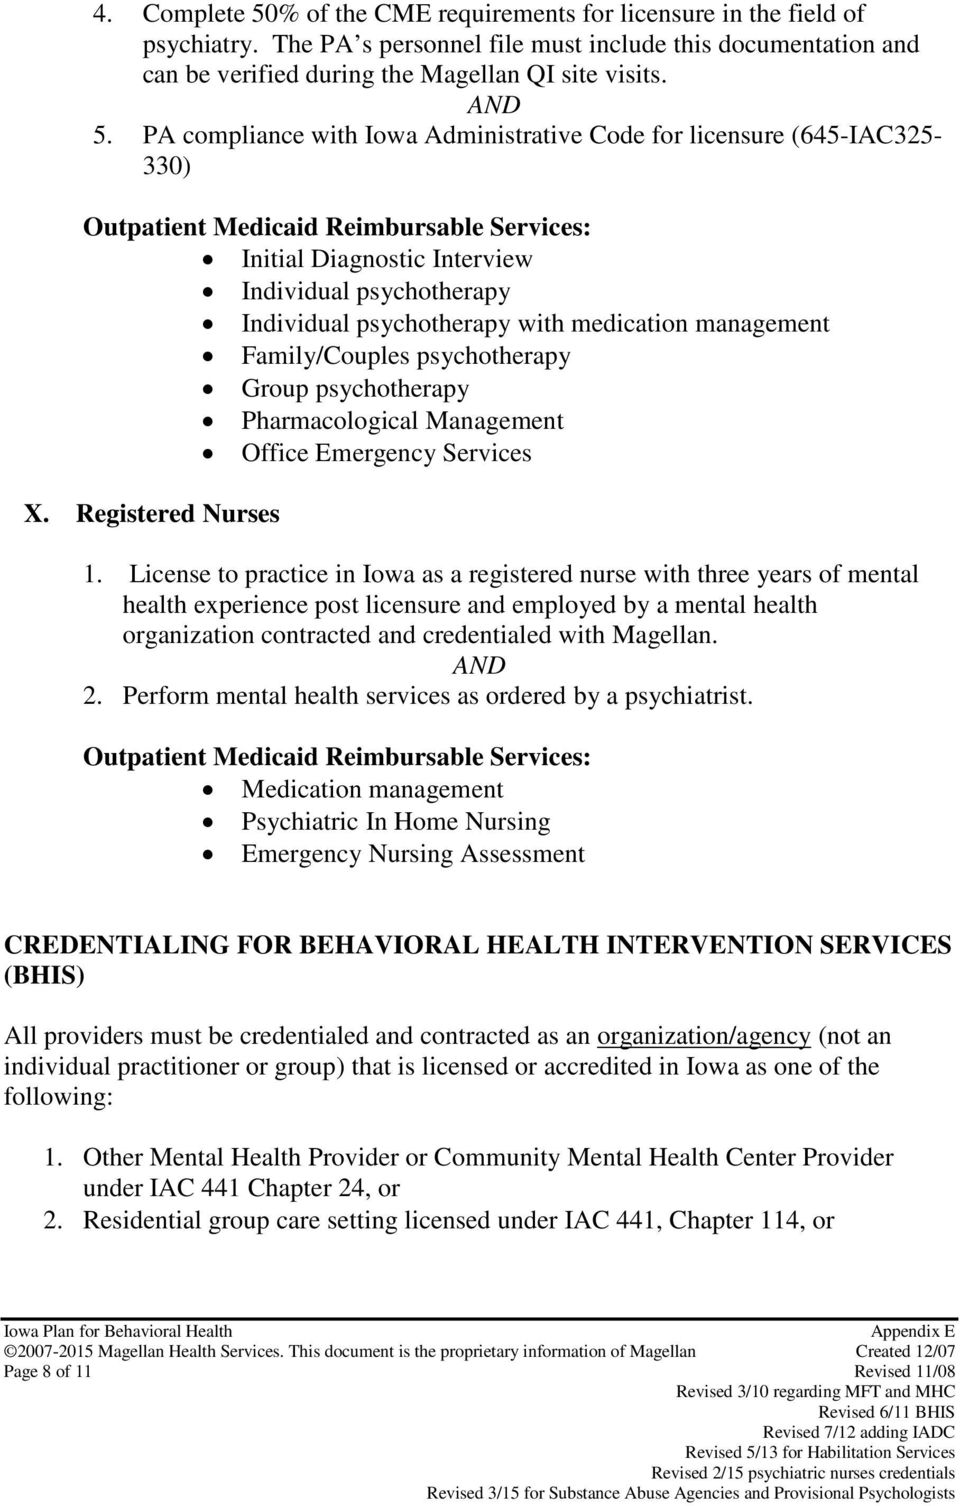 License to practice in Iowa as a registered nurse with three years of mental health experience post licensure and employed by a mental health organization contracted and credentialed with Magellan. 2.